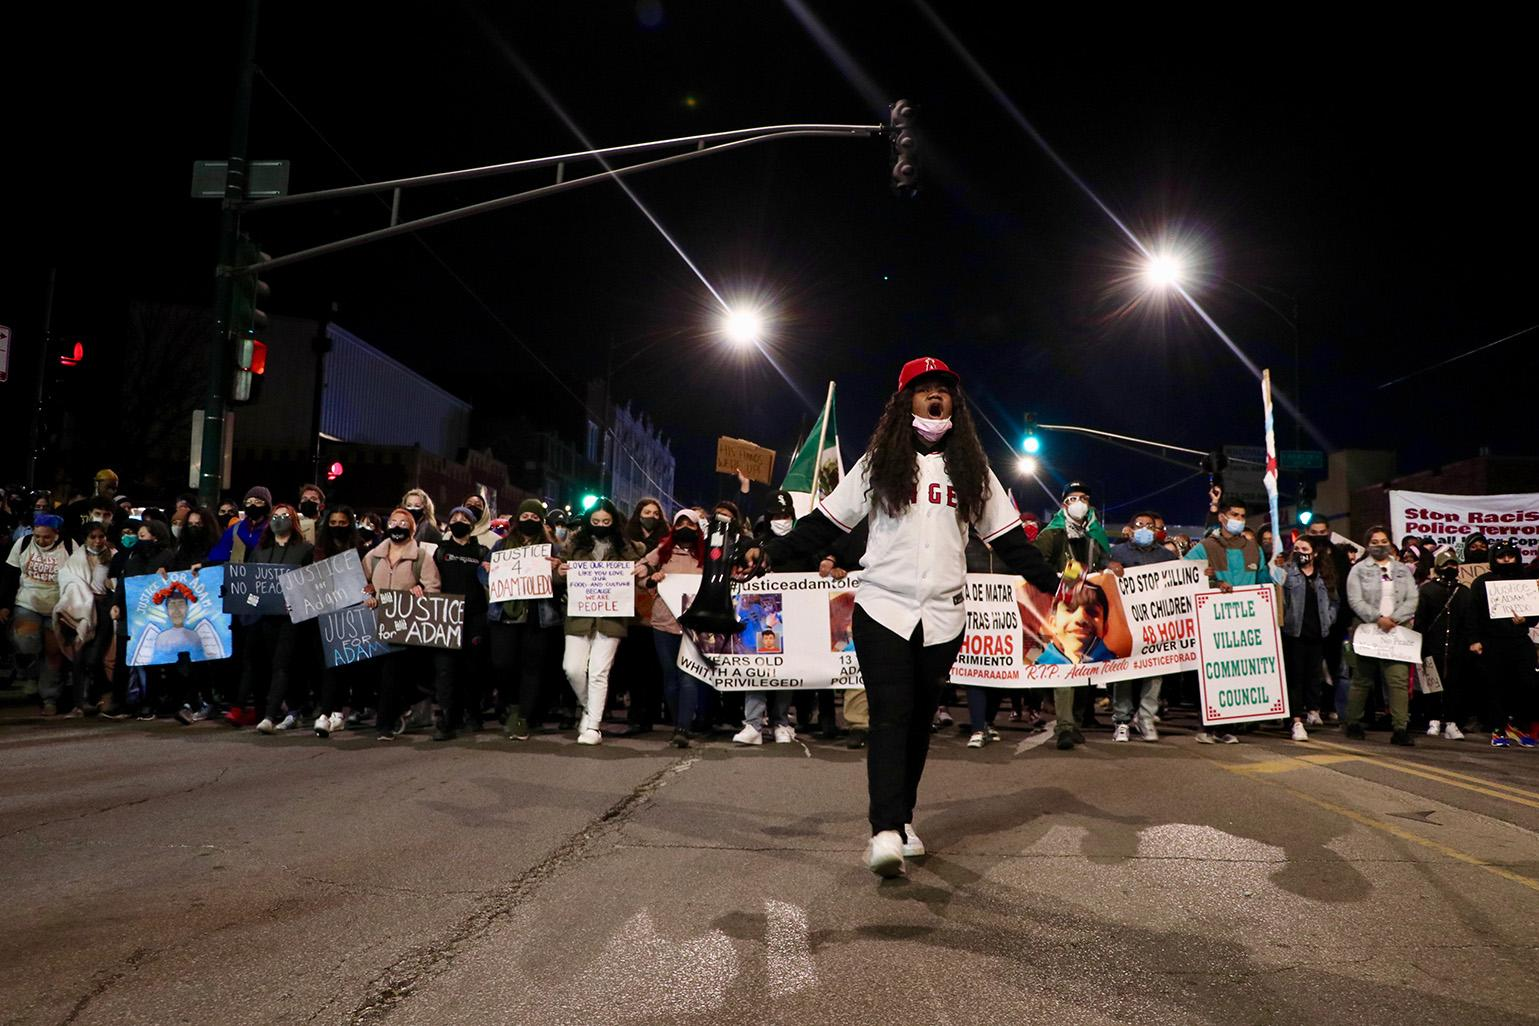 An organizer leads protesters along Fullerton Avenue April 16, 2021, during a protest over the fatal police shooting of 13-year-old Adam Toledo. (Evan Garcia / WTTW News)